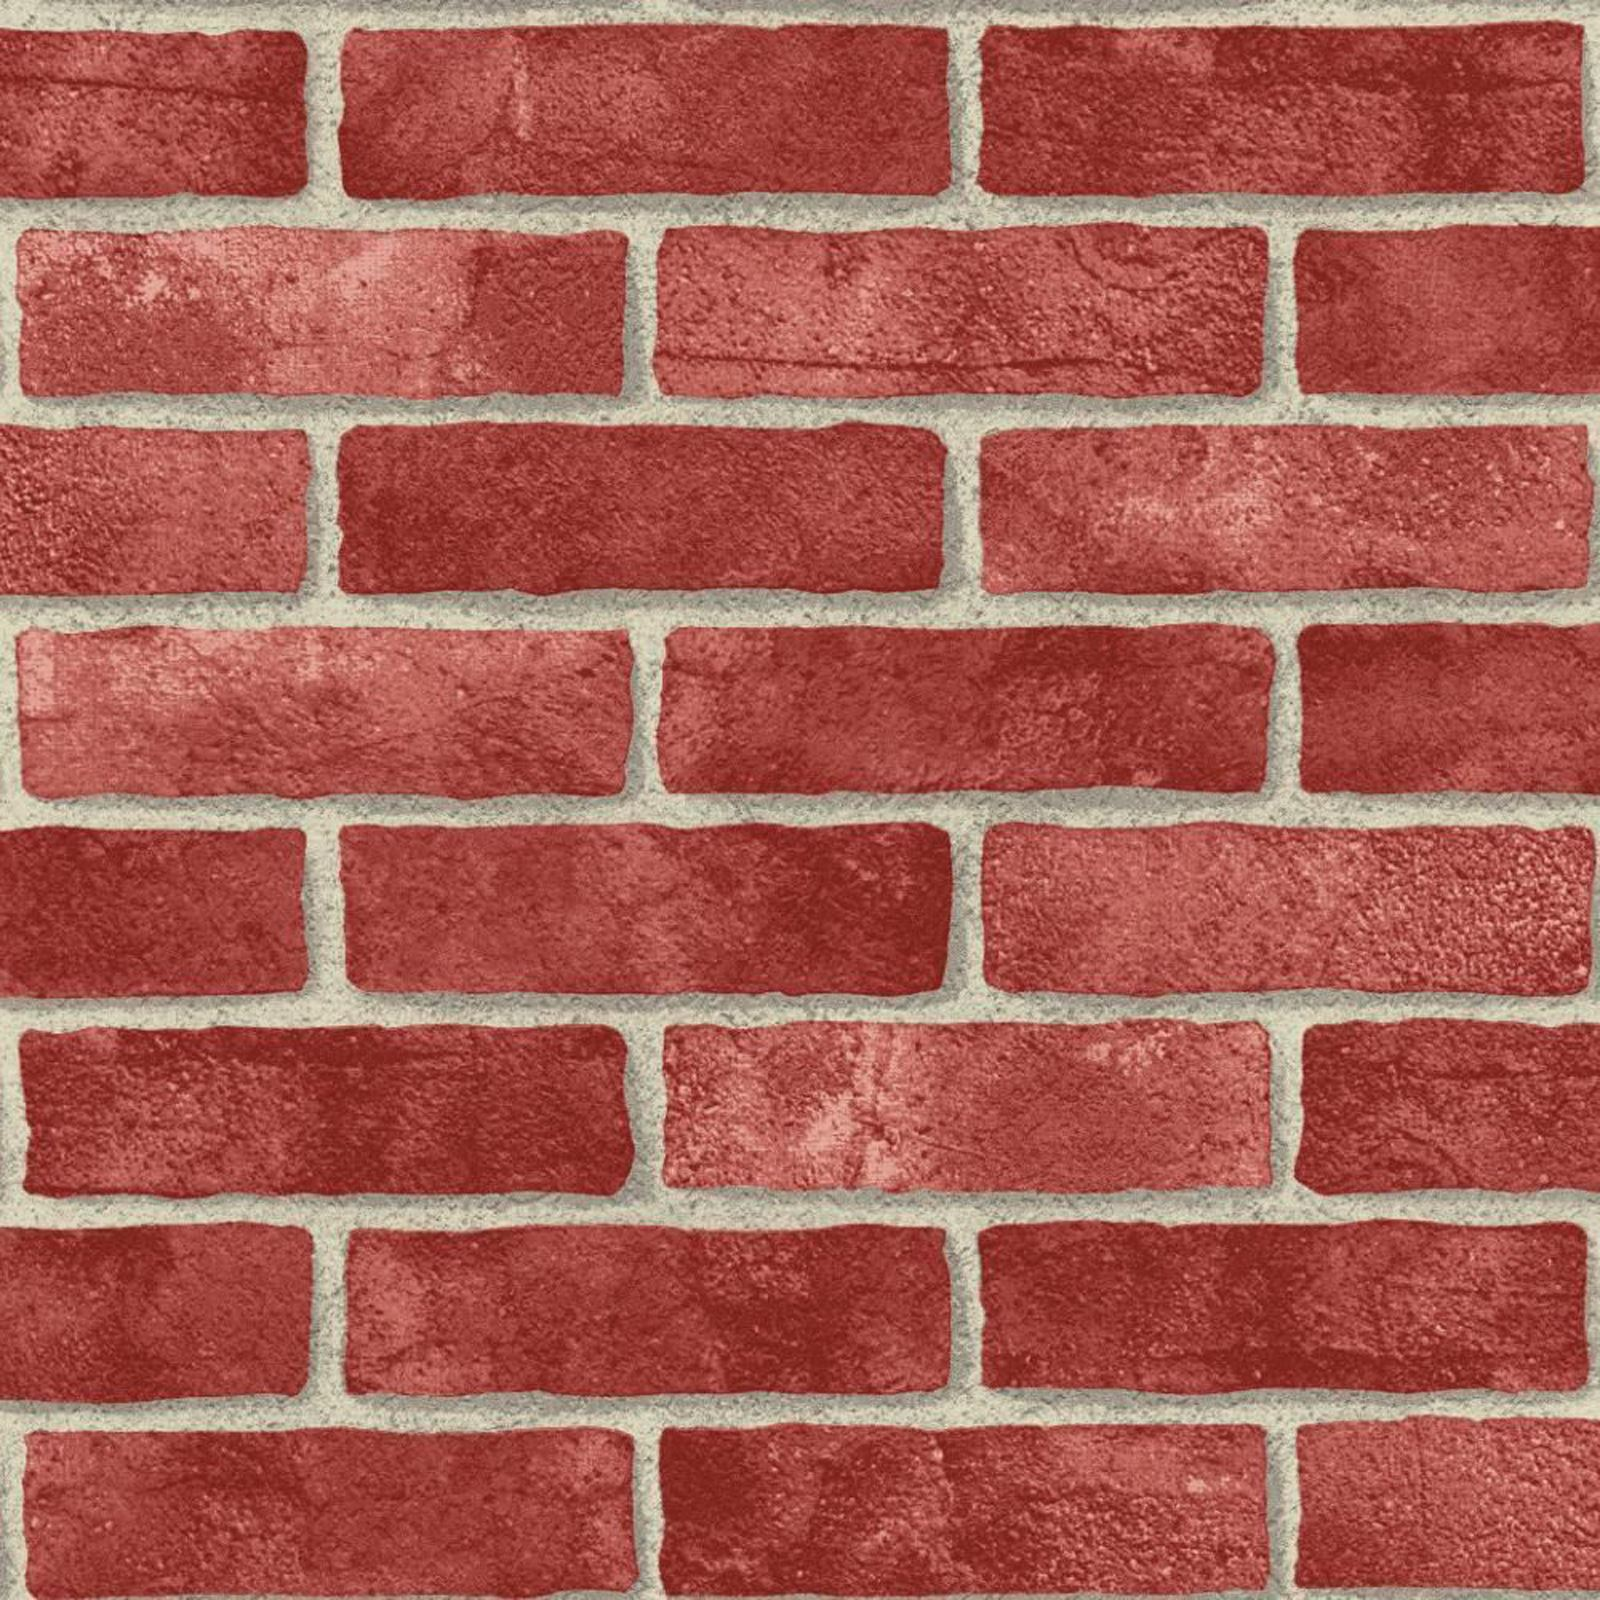 3d Faux Stone Wallpaper Red Brick Effect Wallpaper Suitable For Any Room Feature